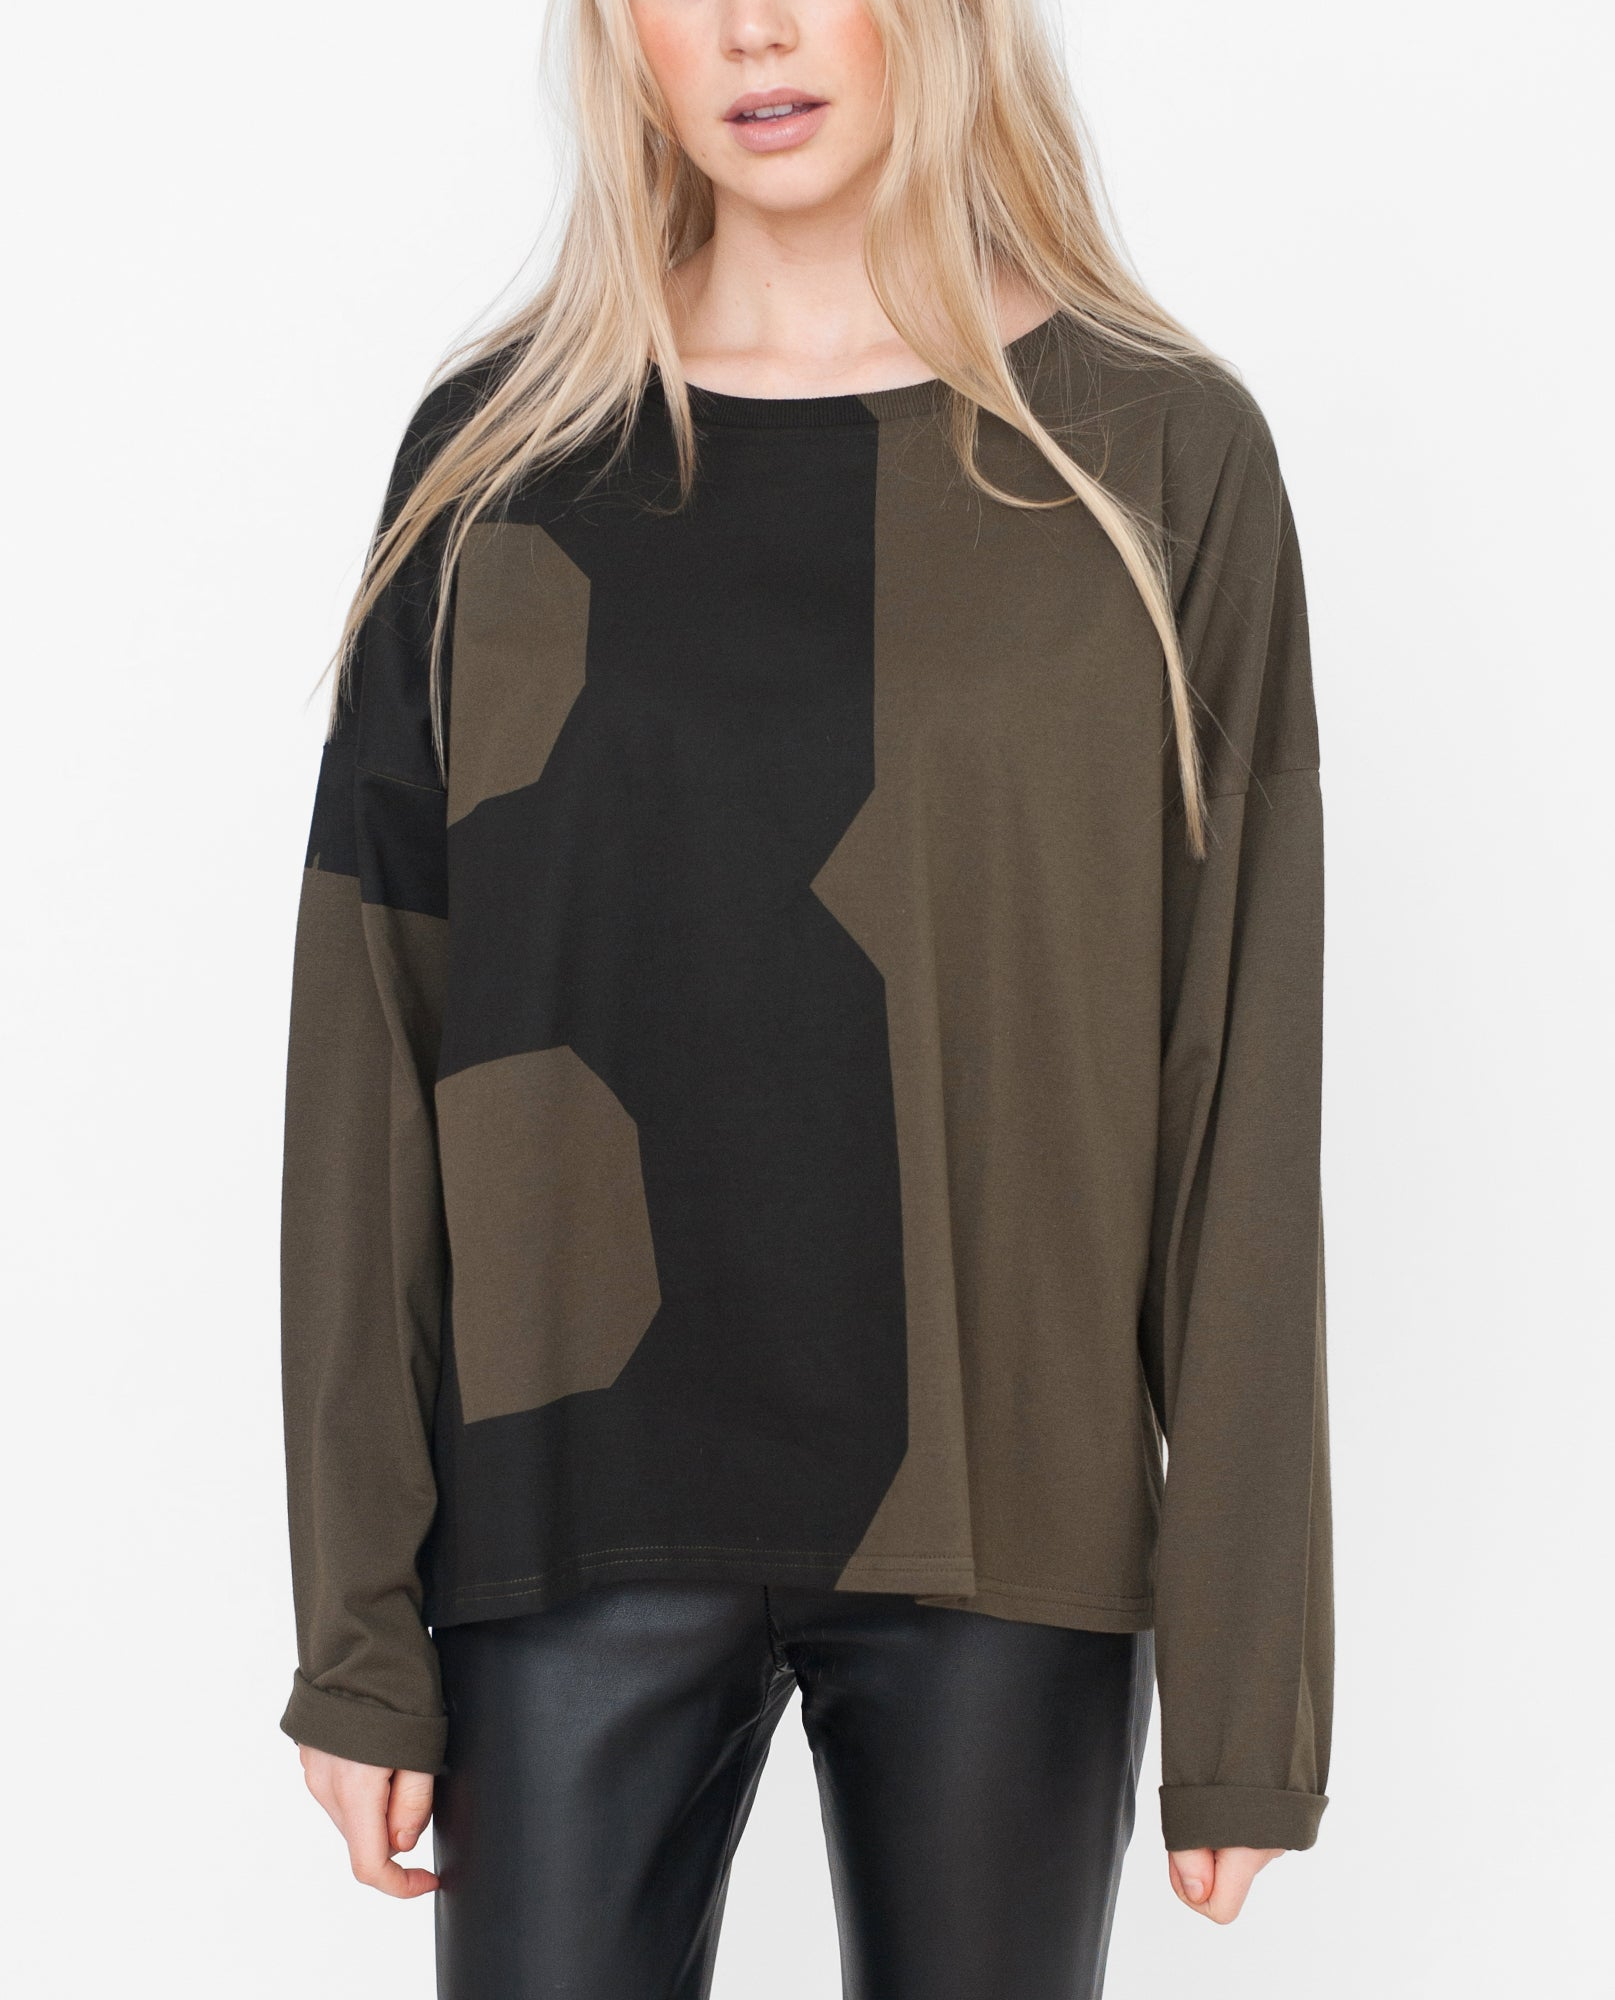 IVANNA Organic Cotton Top In Khaki And Black from Beaumont Organic